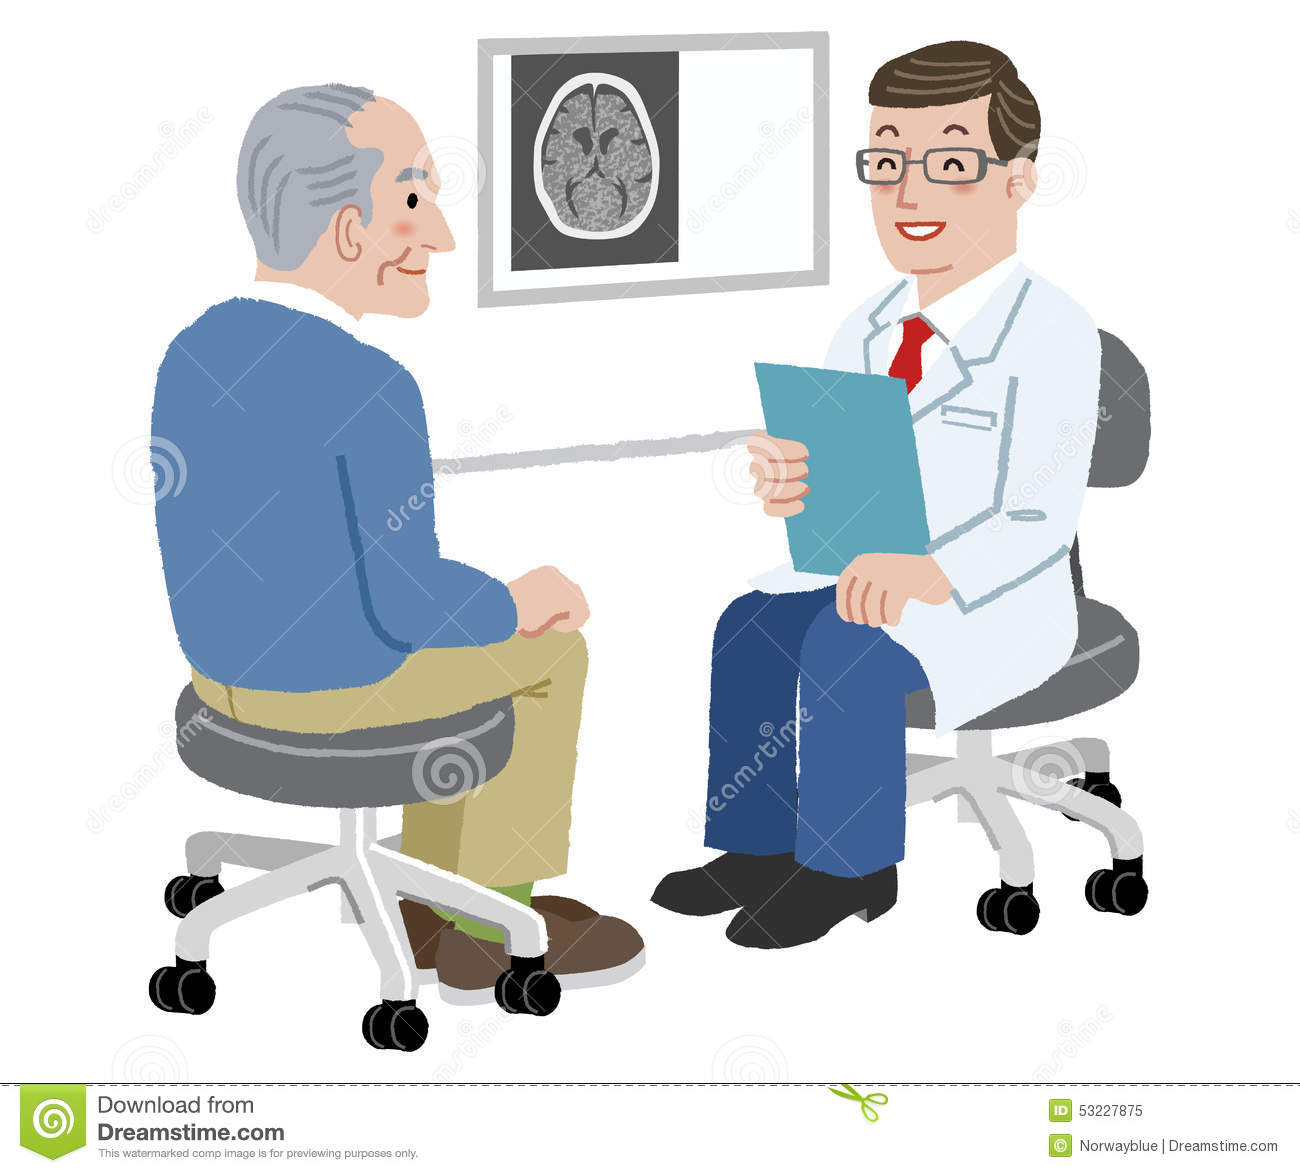 Communication station . Clipart doctor doctor patient